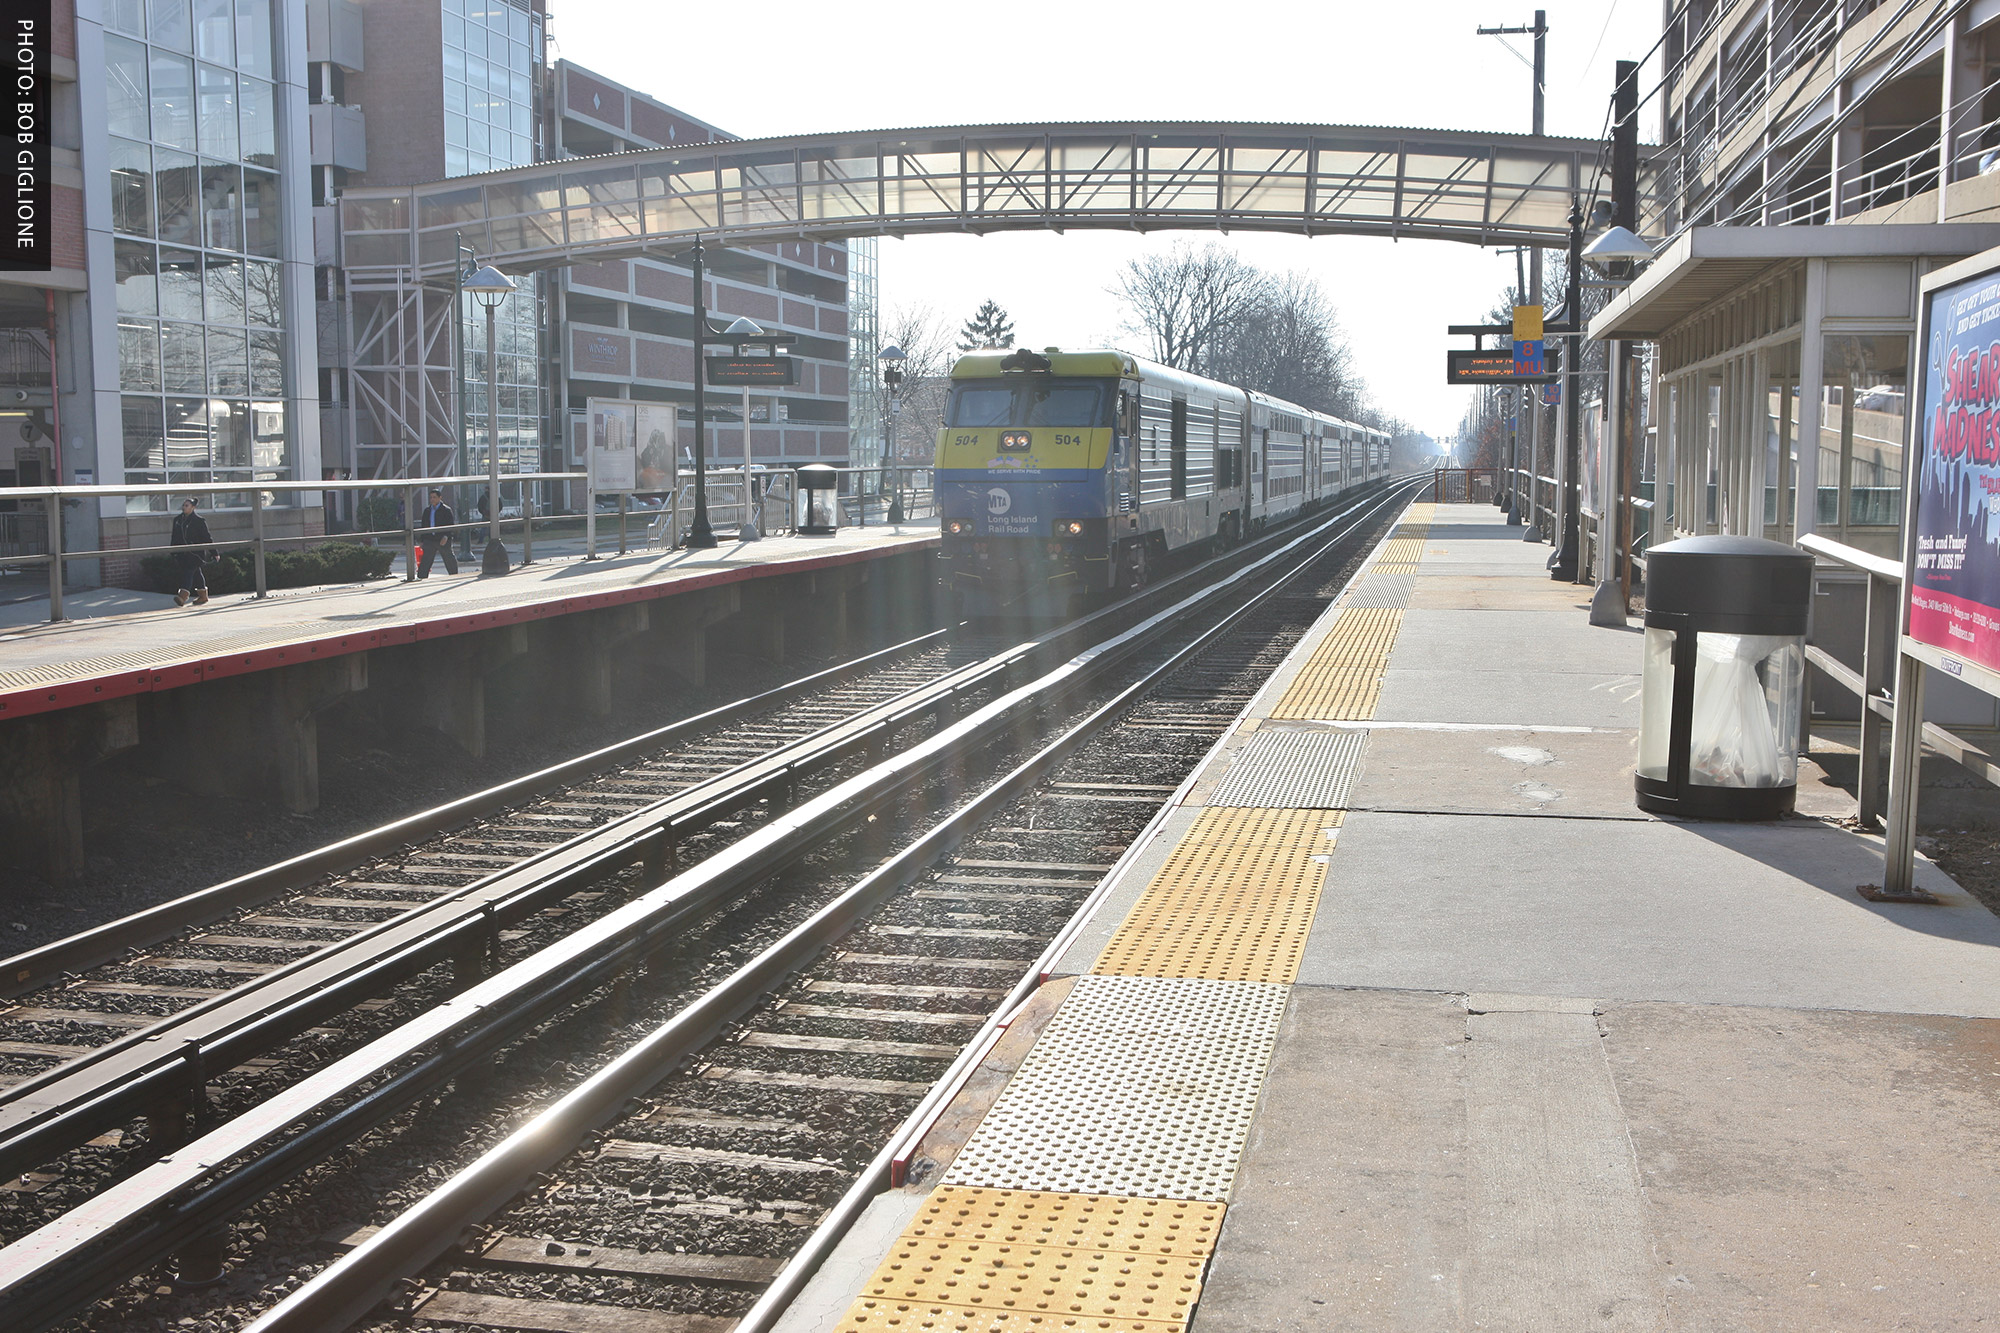 Critics, supporters offer differing views on LIRR third track project